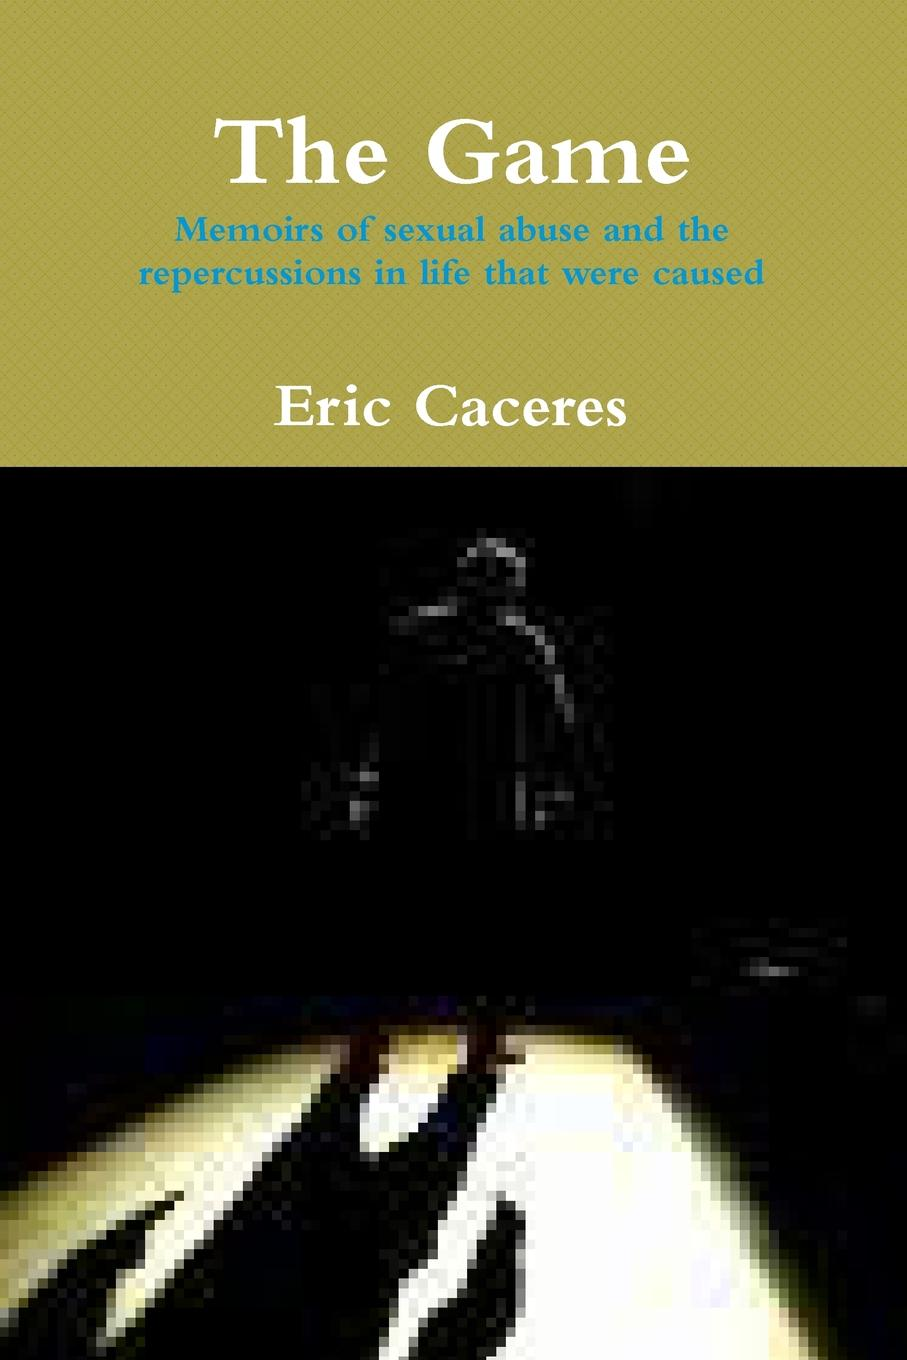 Eric Caceres The Game- Memoirs of sexual abuse and repercussions cara colter 9 out of 10 women can t be wrong